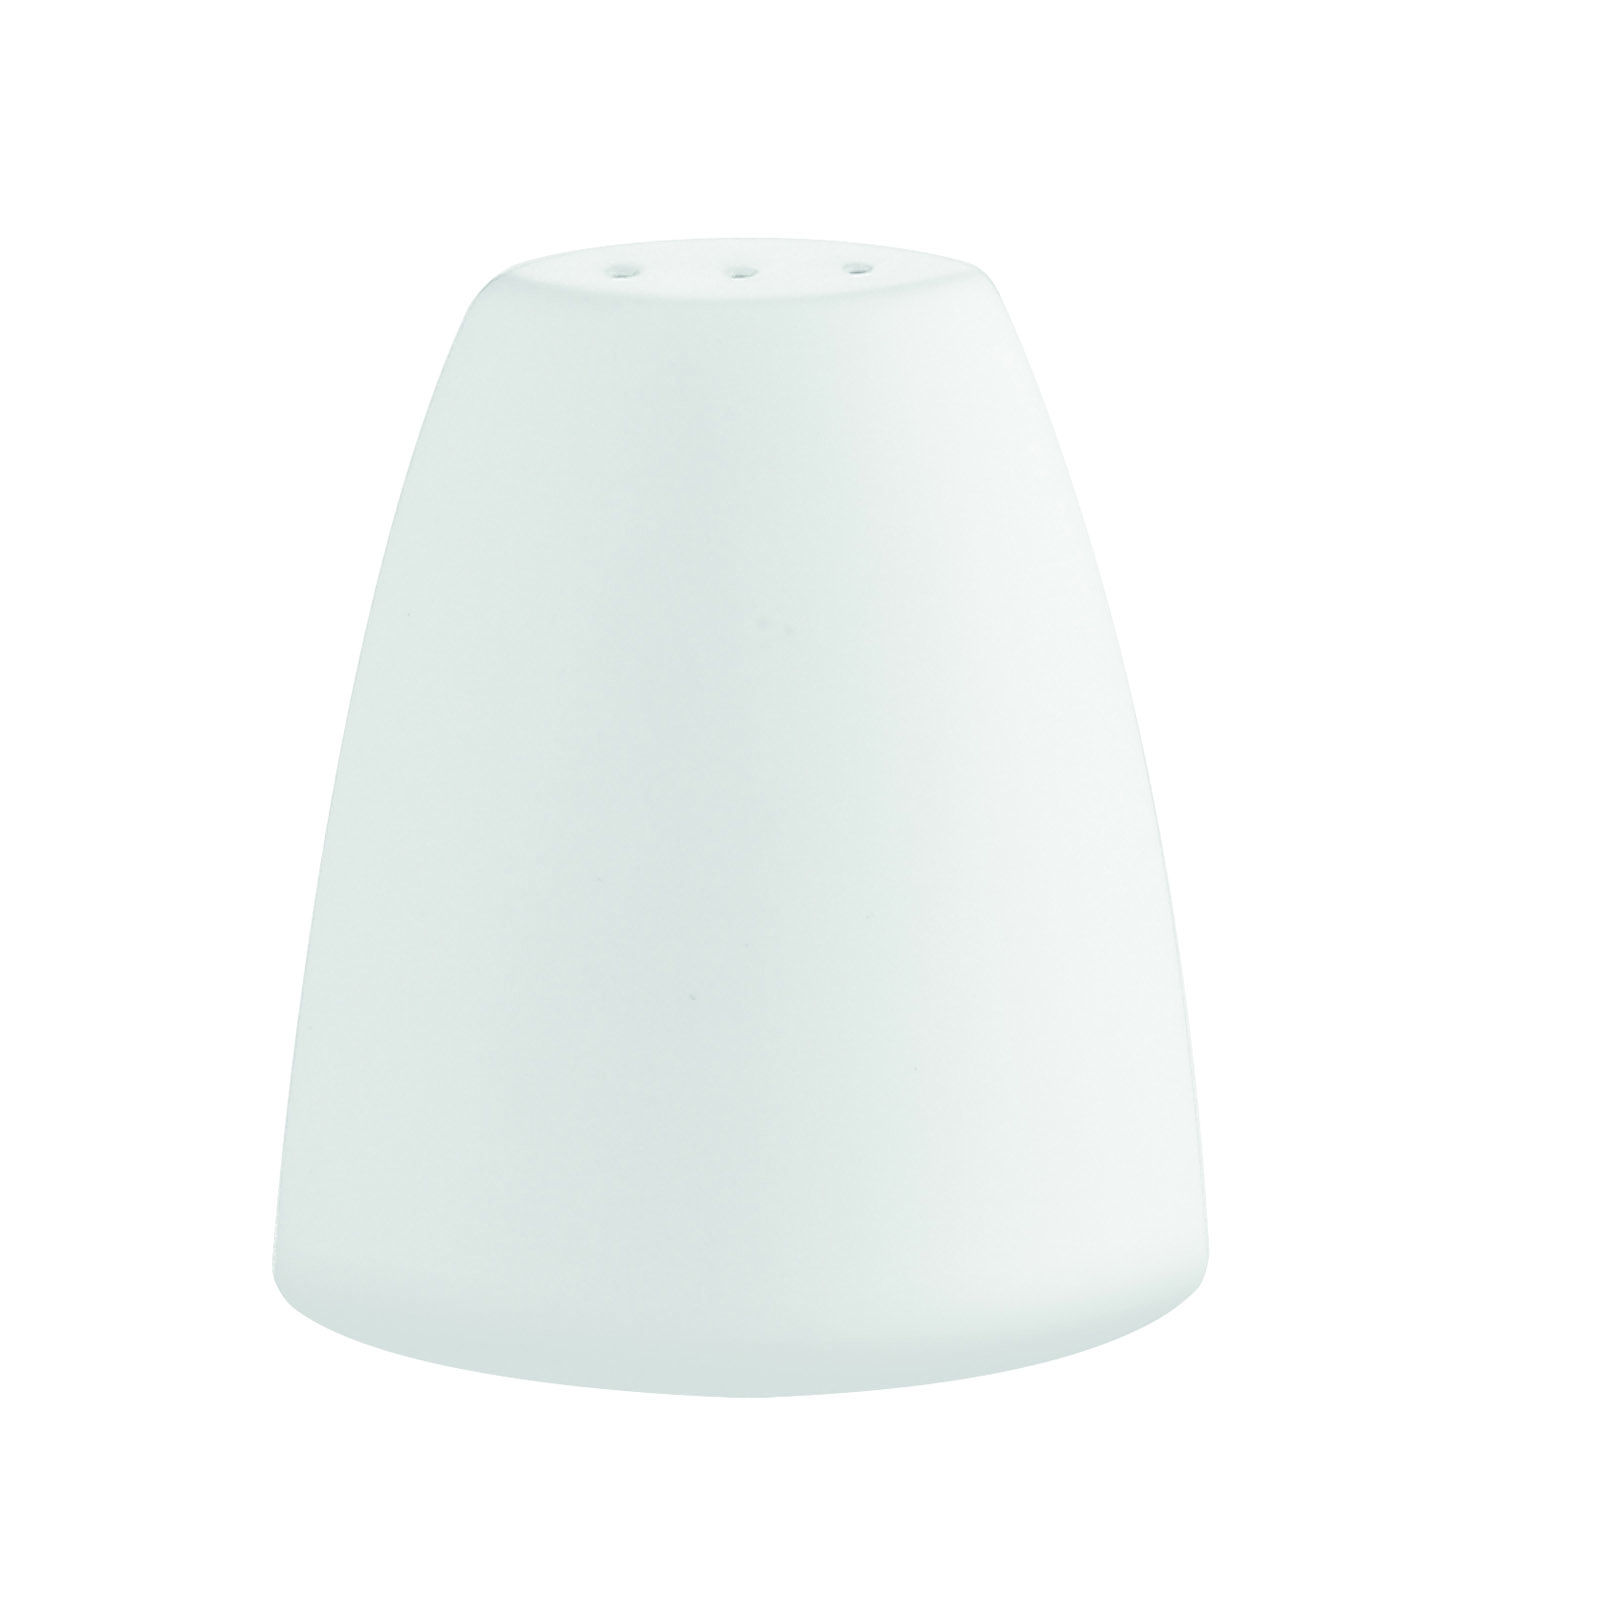 Cardinal S2543 salt / pepper shaker, china